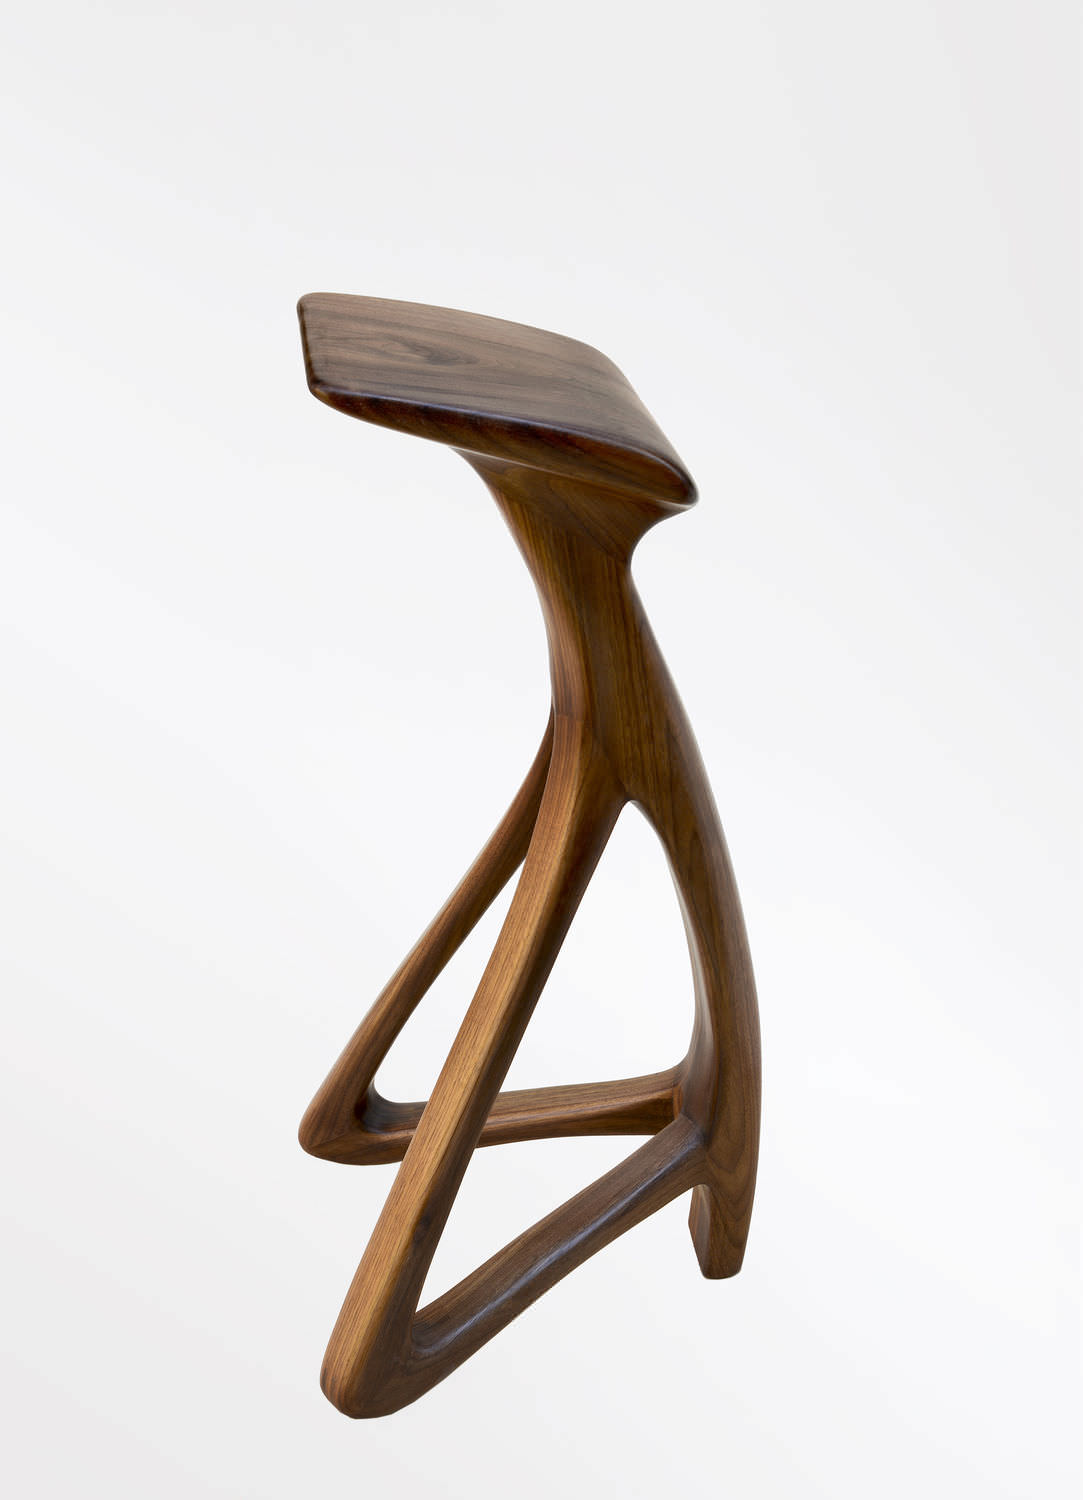 Original design bar stool / walnut / commercial LOLA Dimisco ... & Original design bar stool / walnut / commercial - LOLA - Dimisco islam-shia.org